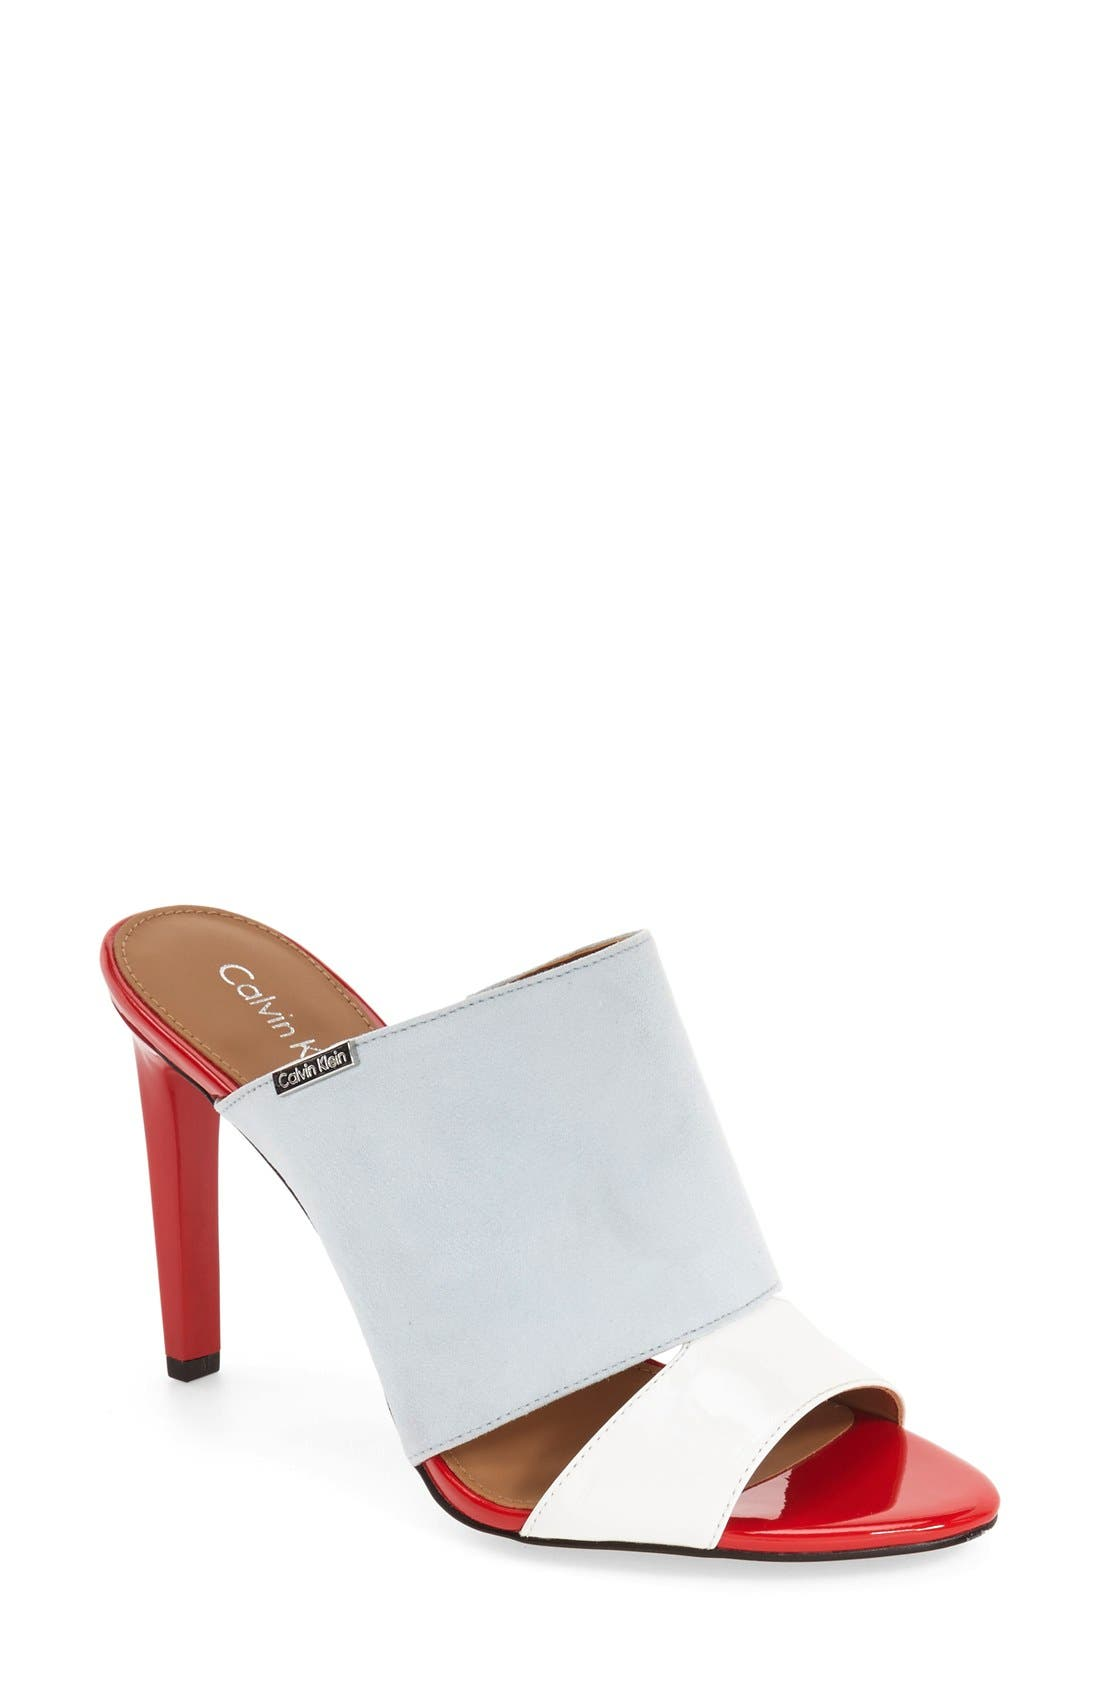 'Ninfa' Mule,                         Main,                         color, Platinum White Patent